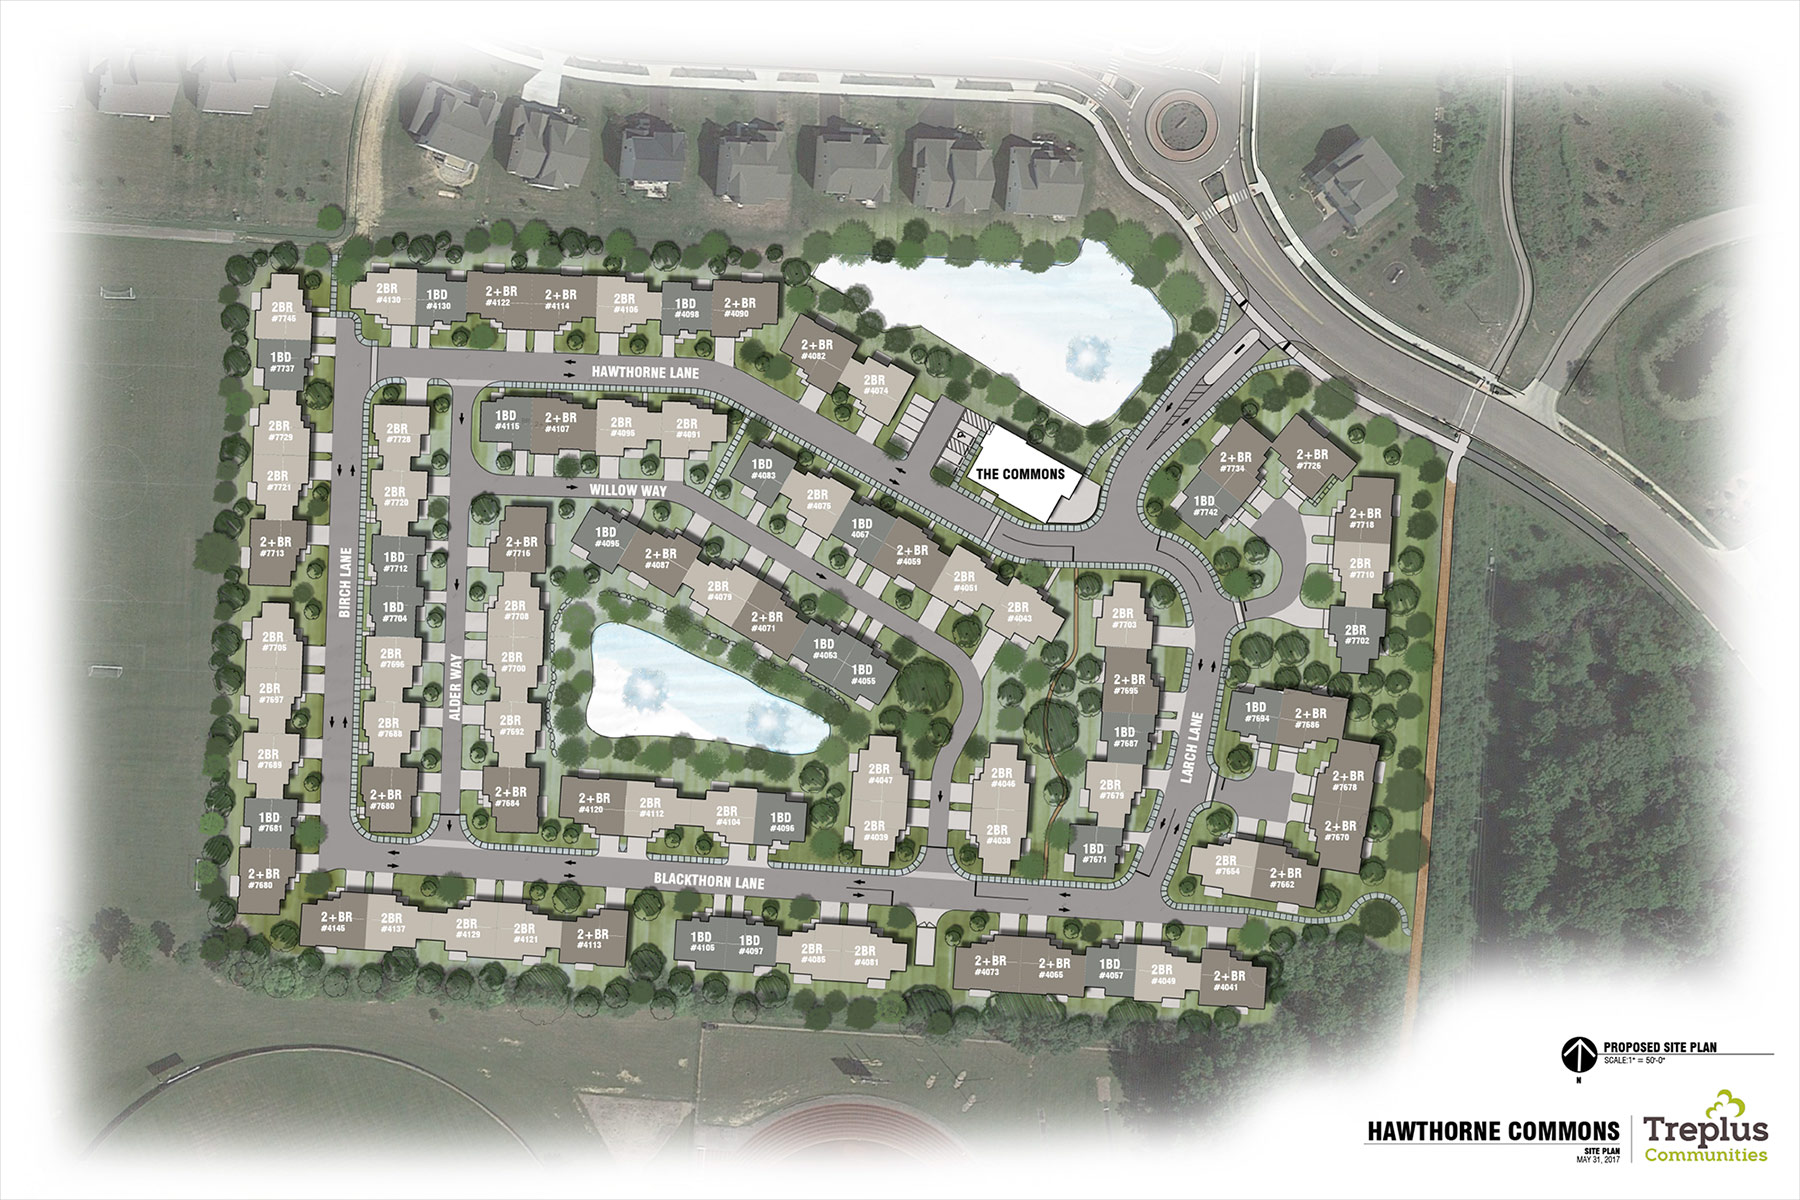 Hawthorne Commons Site Plan of Dublin Ohio apartments